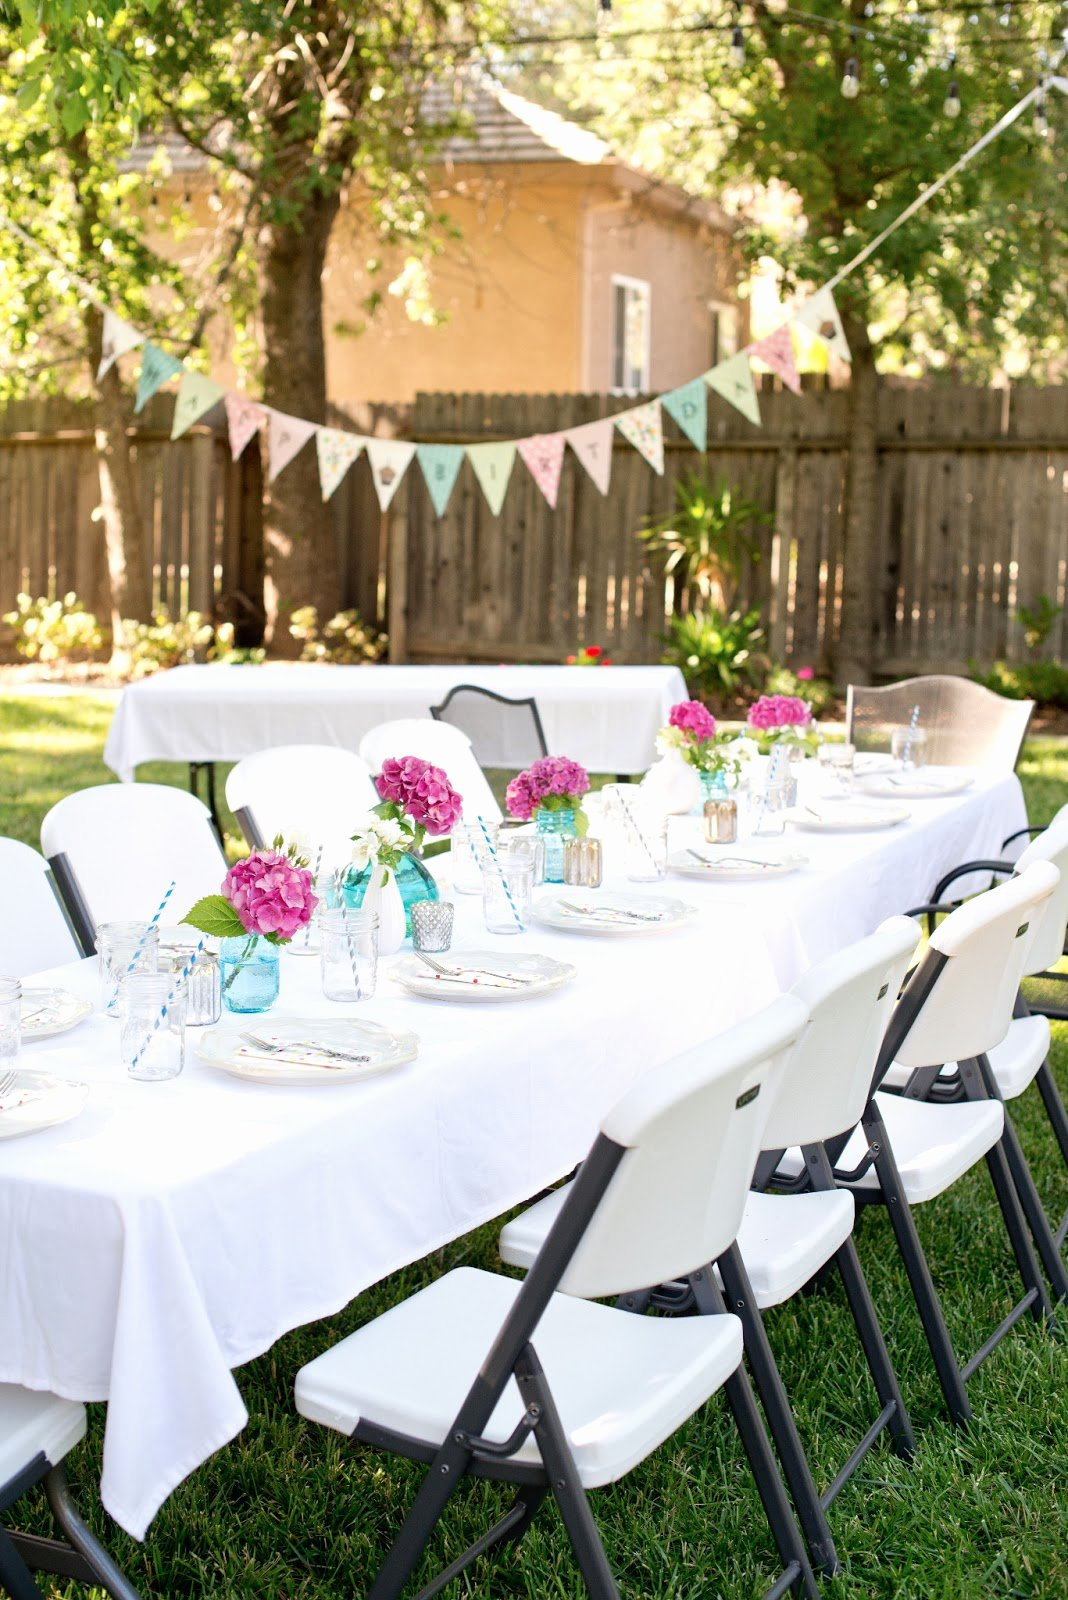 Backyard Birthday Decoration Ideas New Backyard Idea Low Bud Garden Party Decorations Ideas for